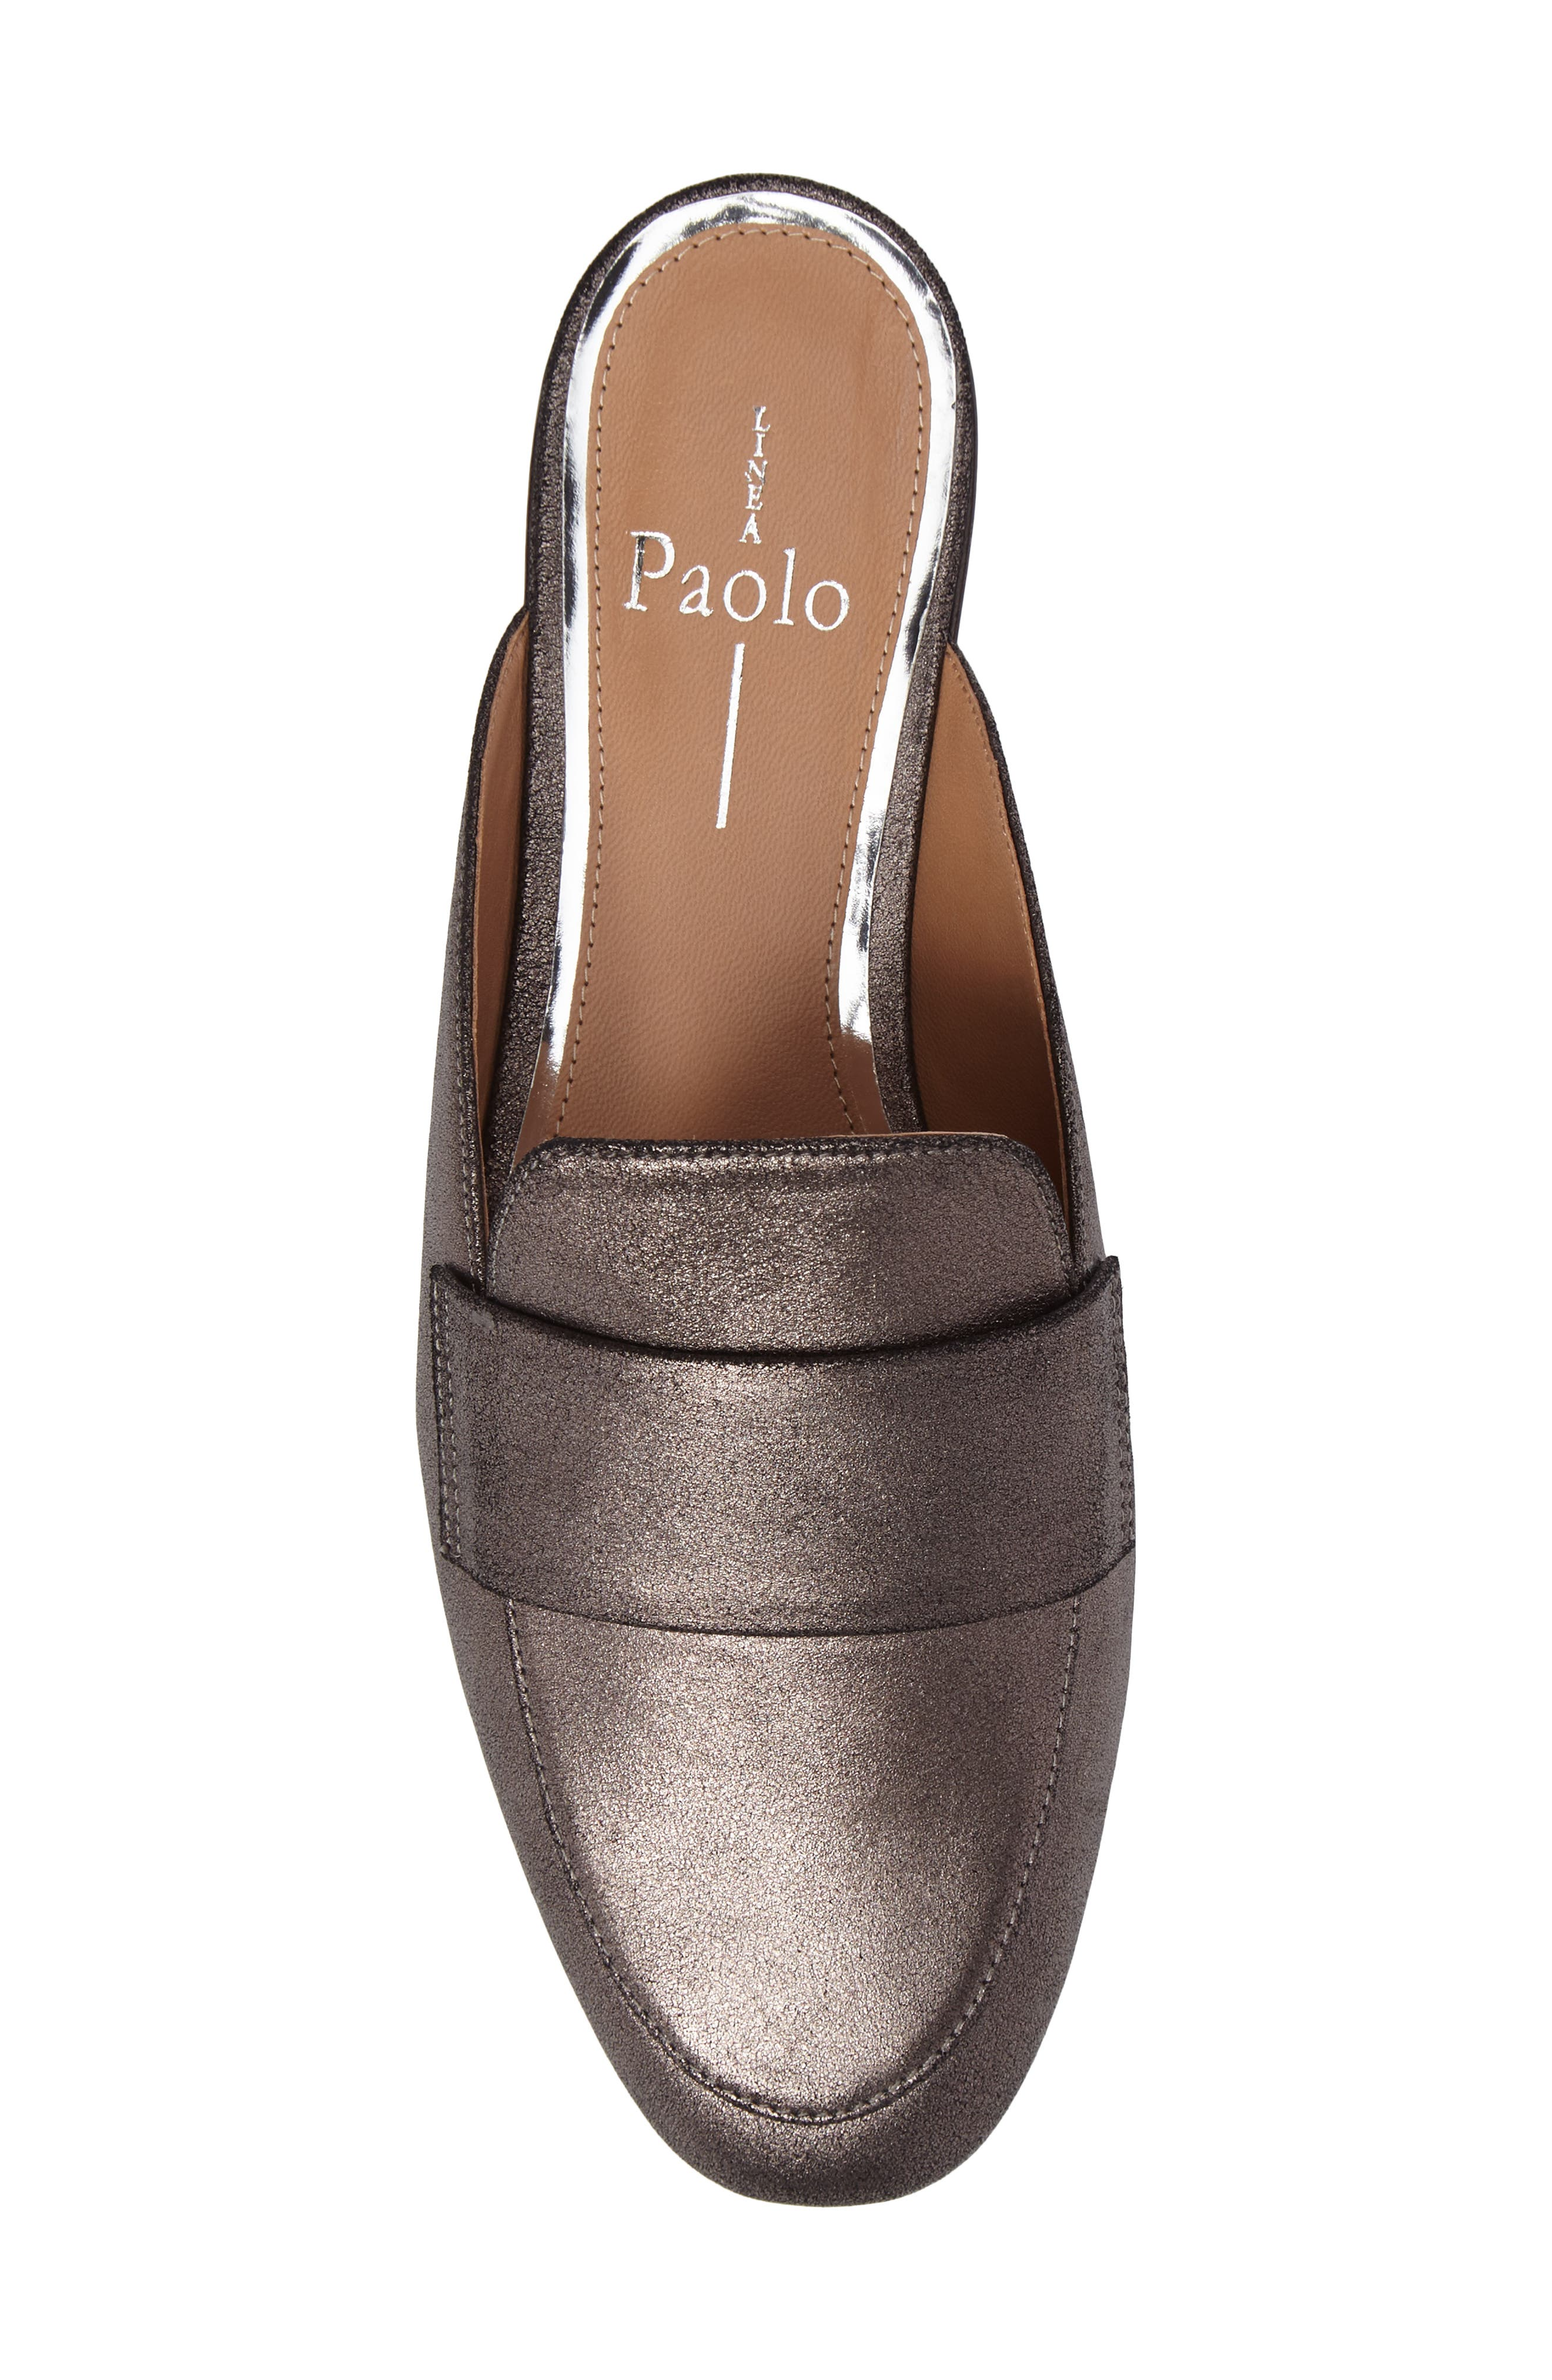 LINEA PAOLO, Annie Loafer Mule, Alternate thumbnail 5, color, PEWTER SUEDE